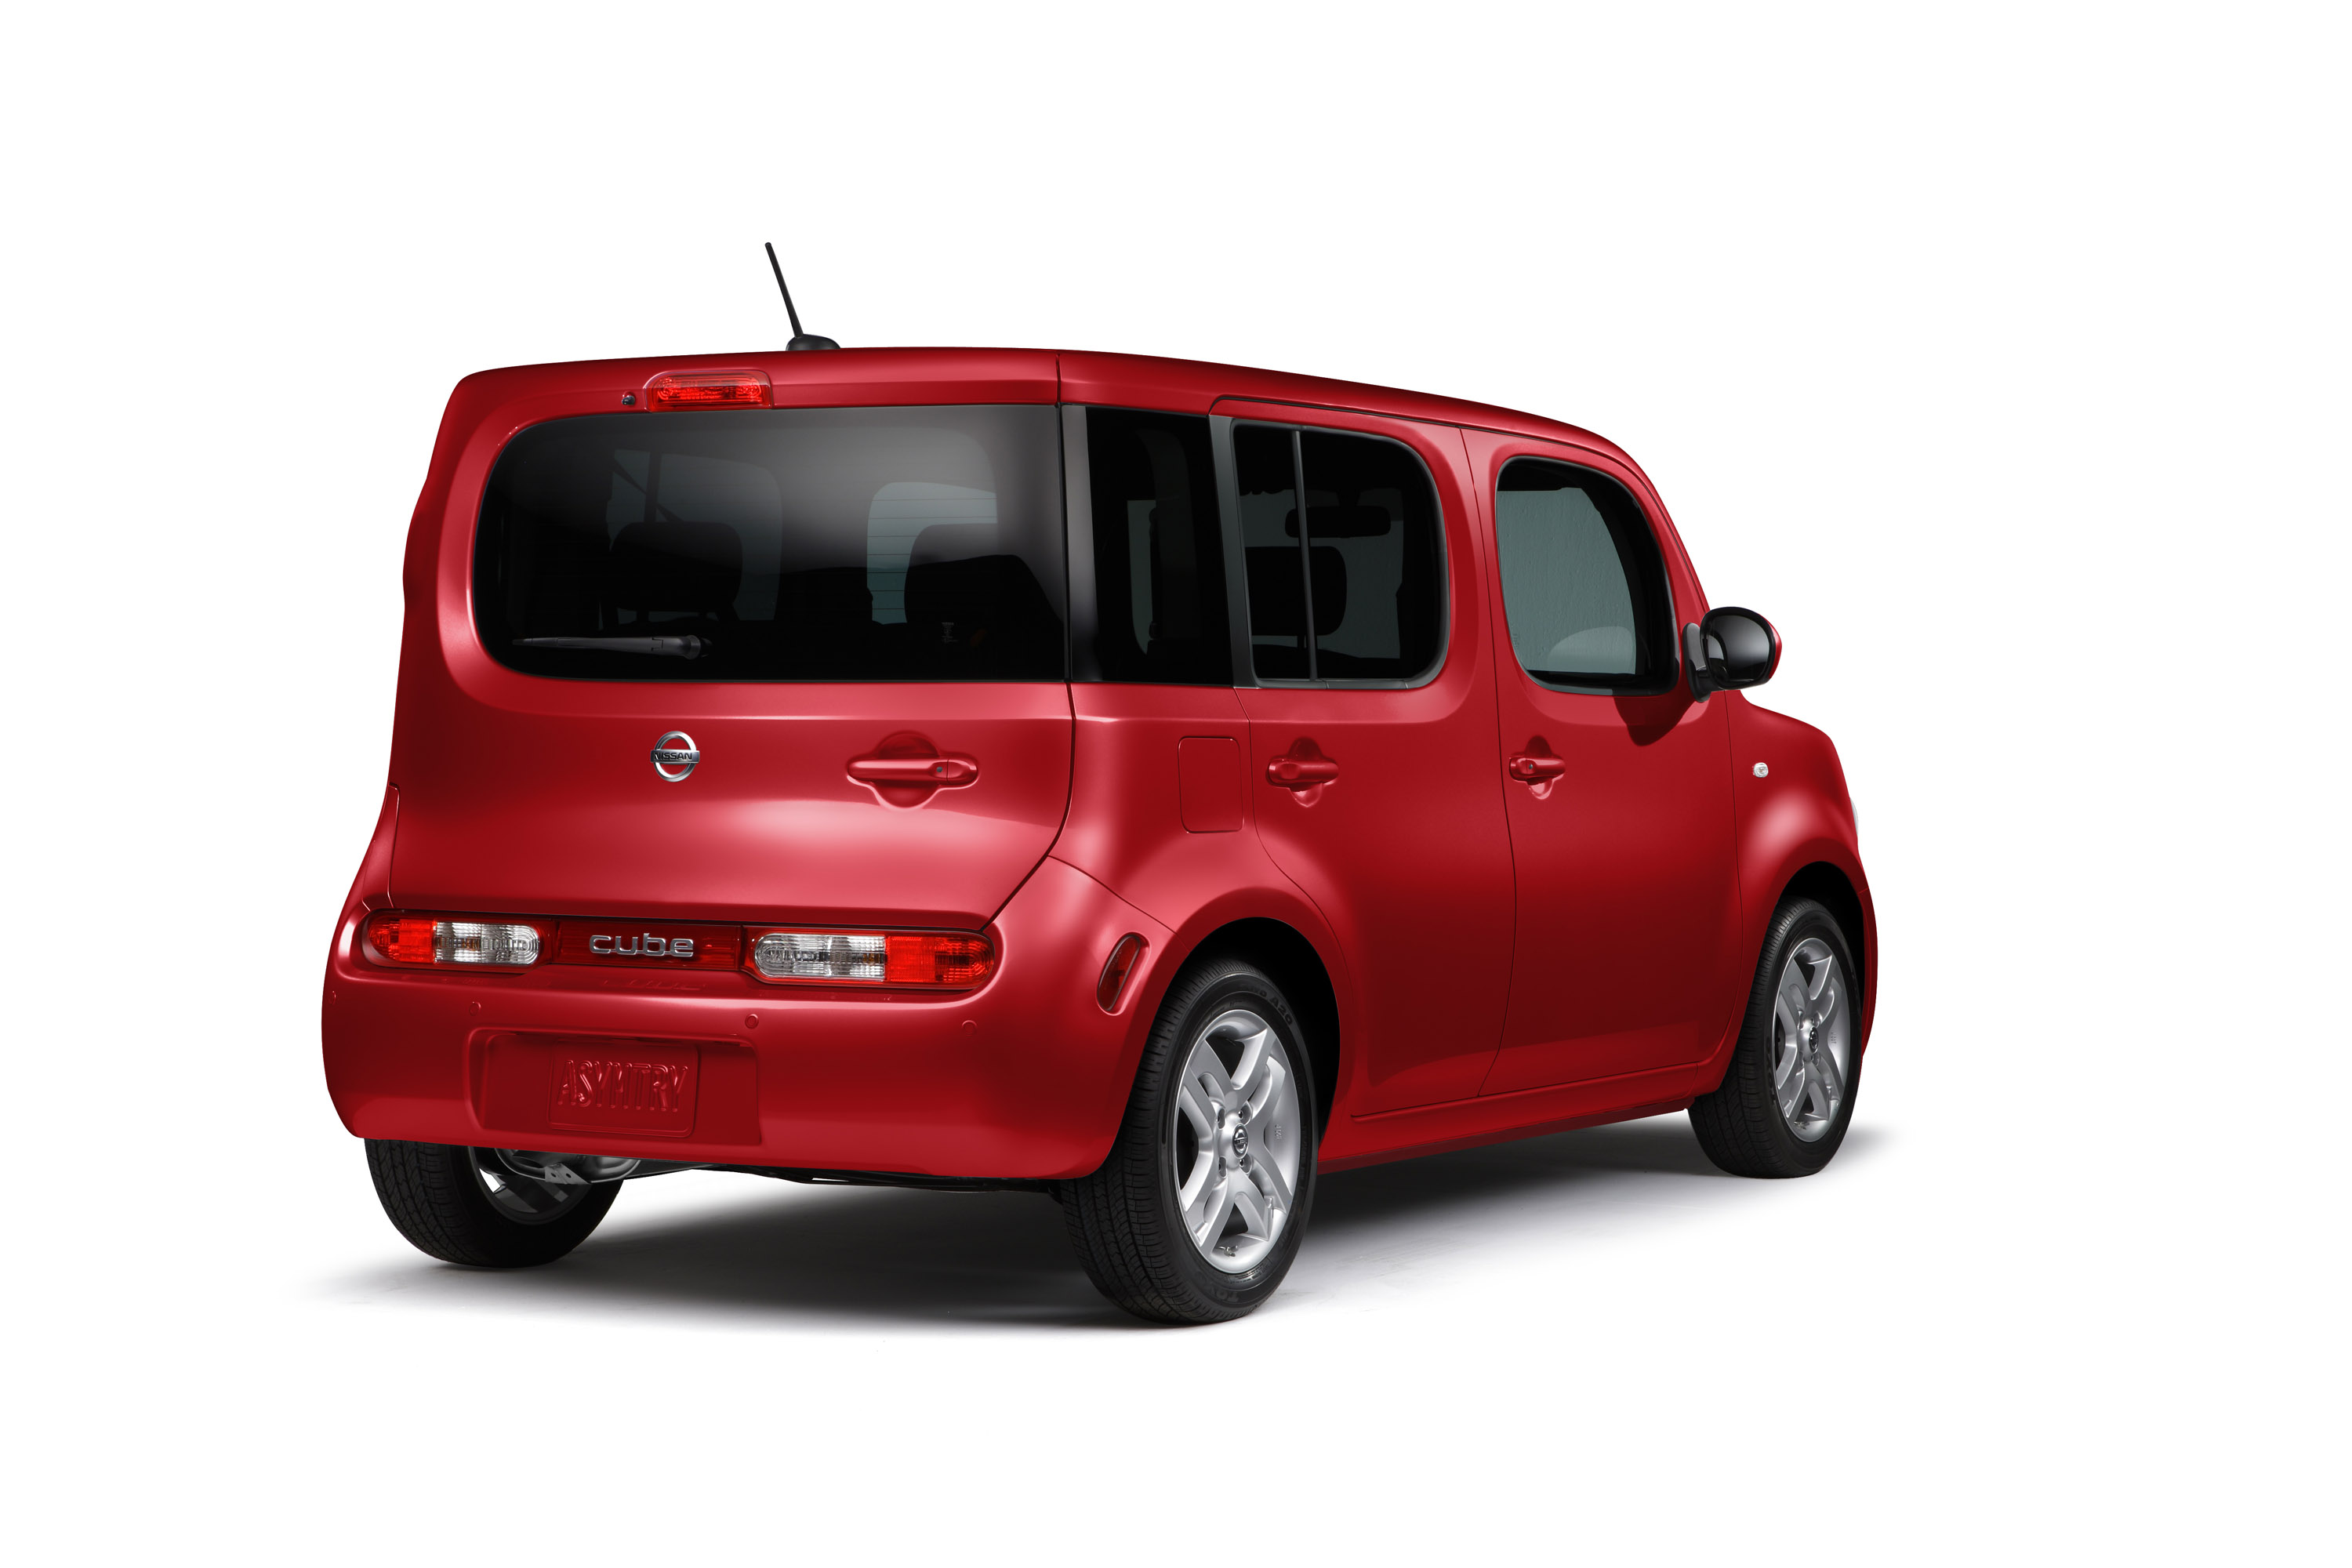 Nissan Cube Fresh In 2012 Prices Announced